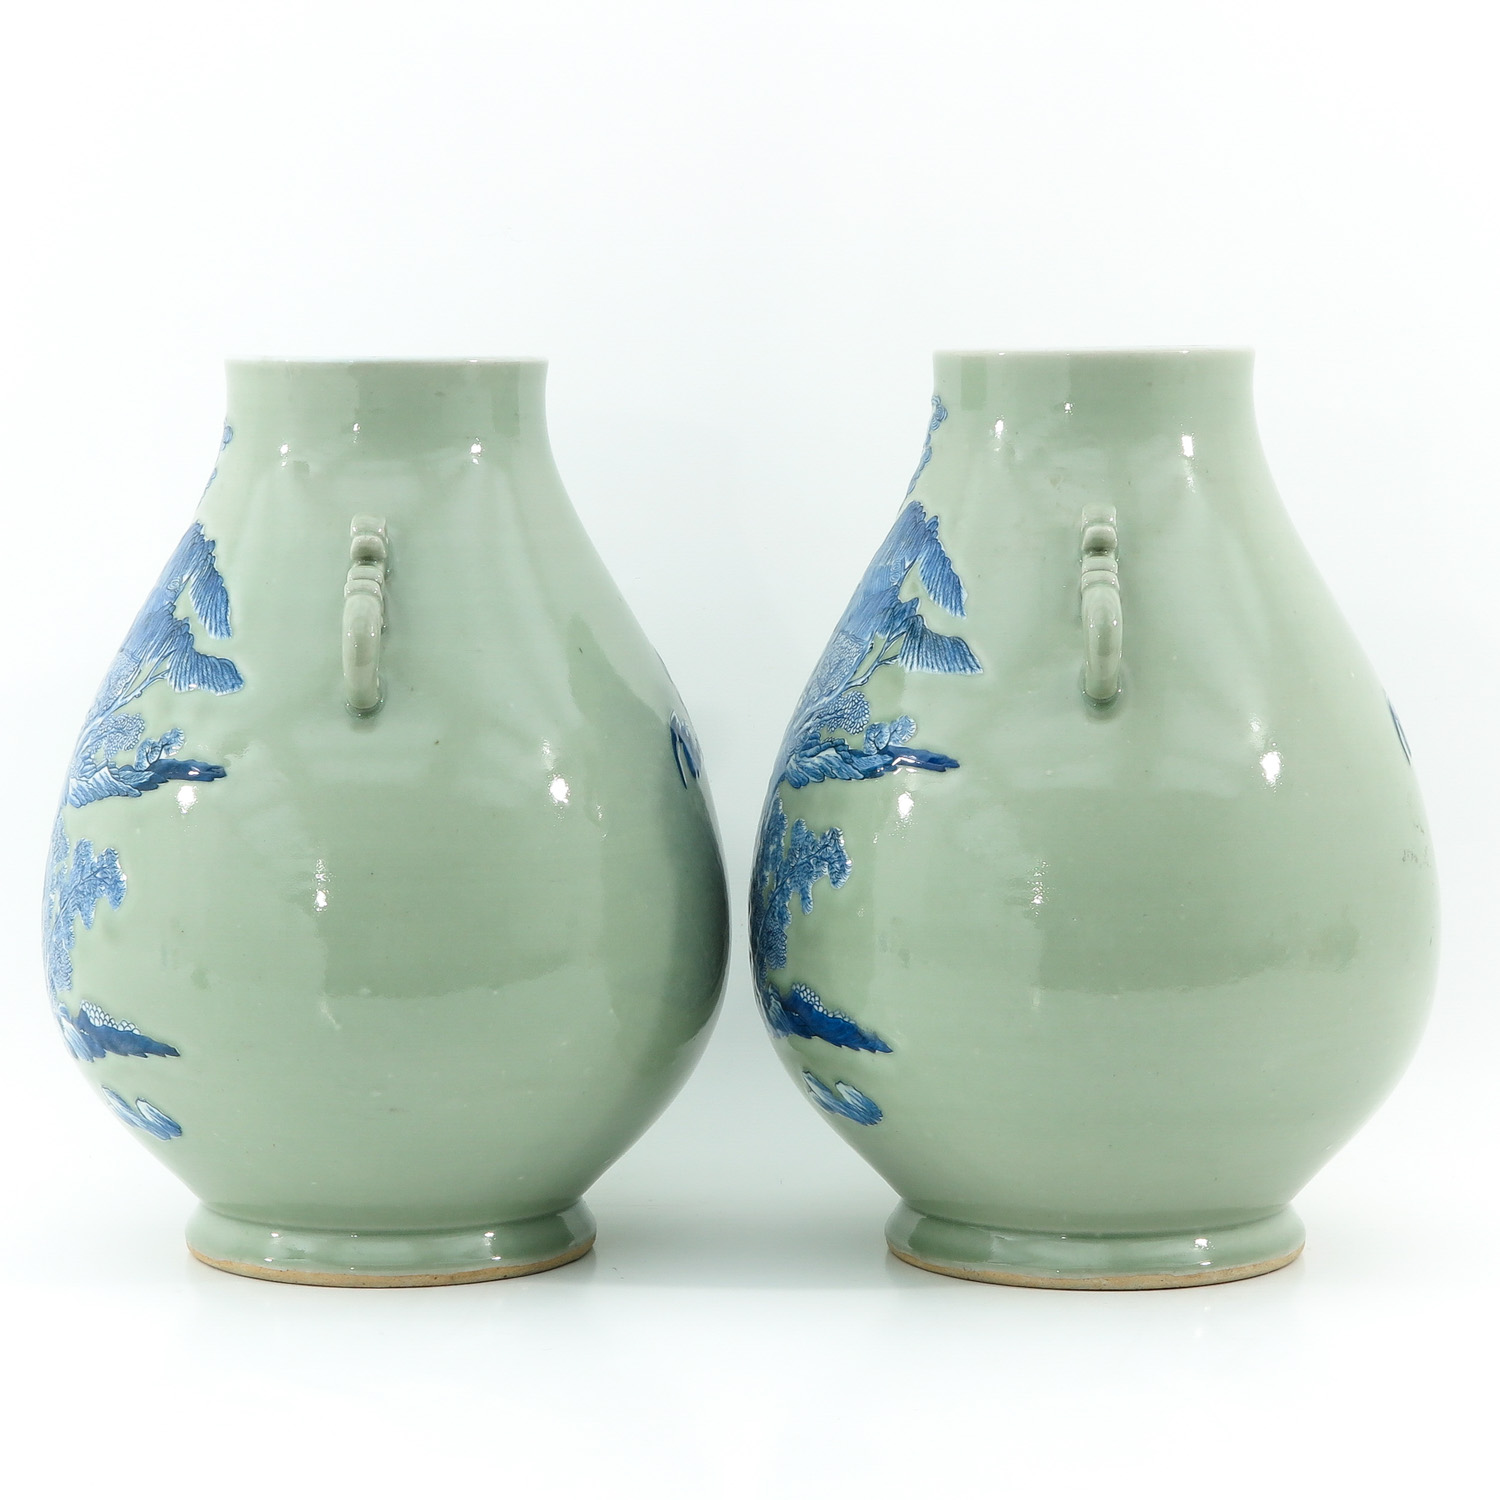 A Pair of Celadon and Blue Hu Vases - Image 2 of 10